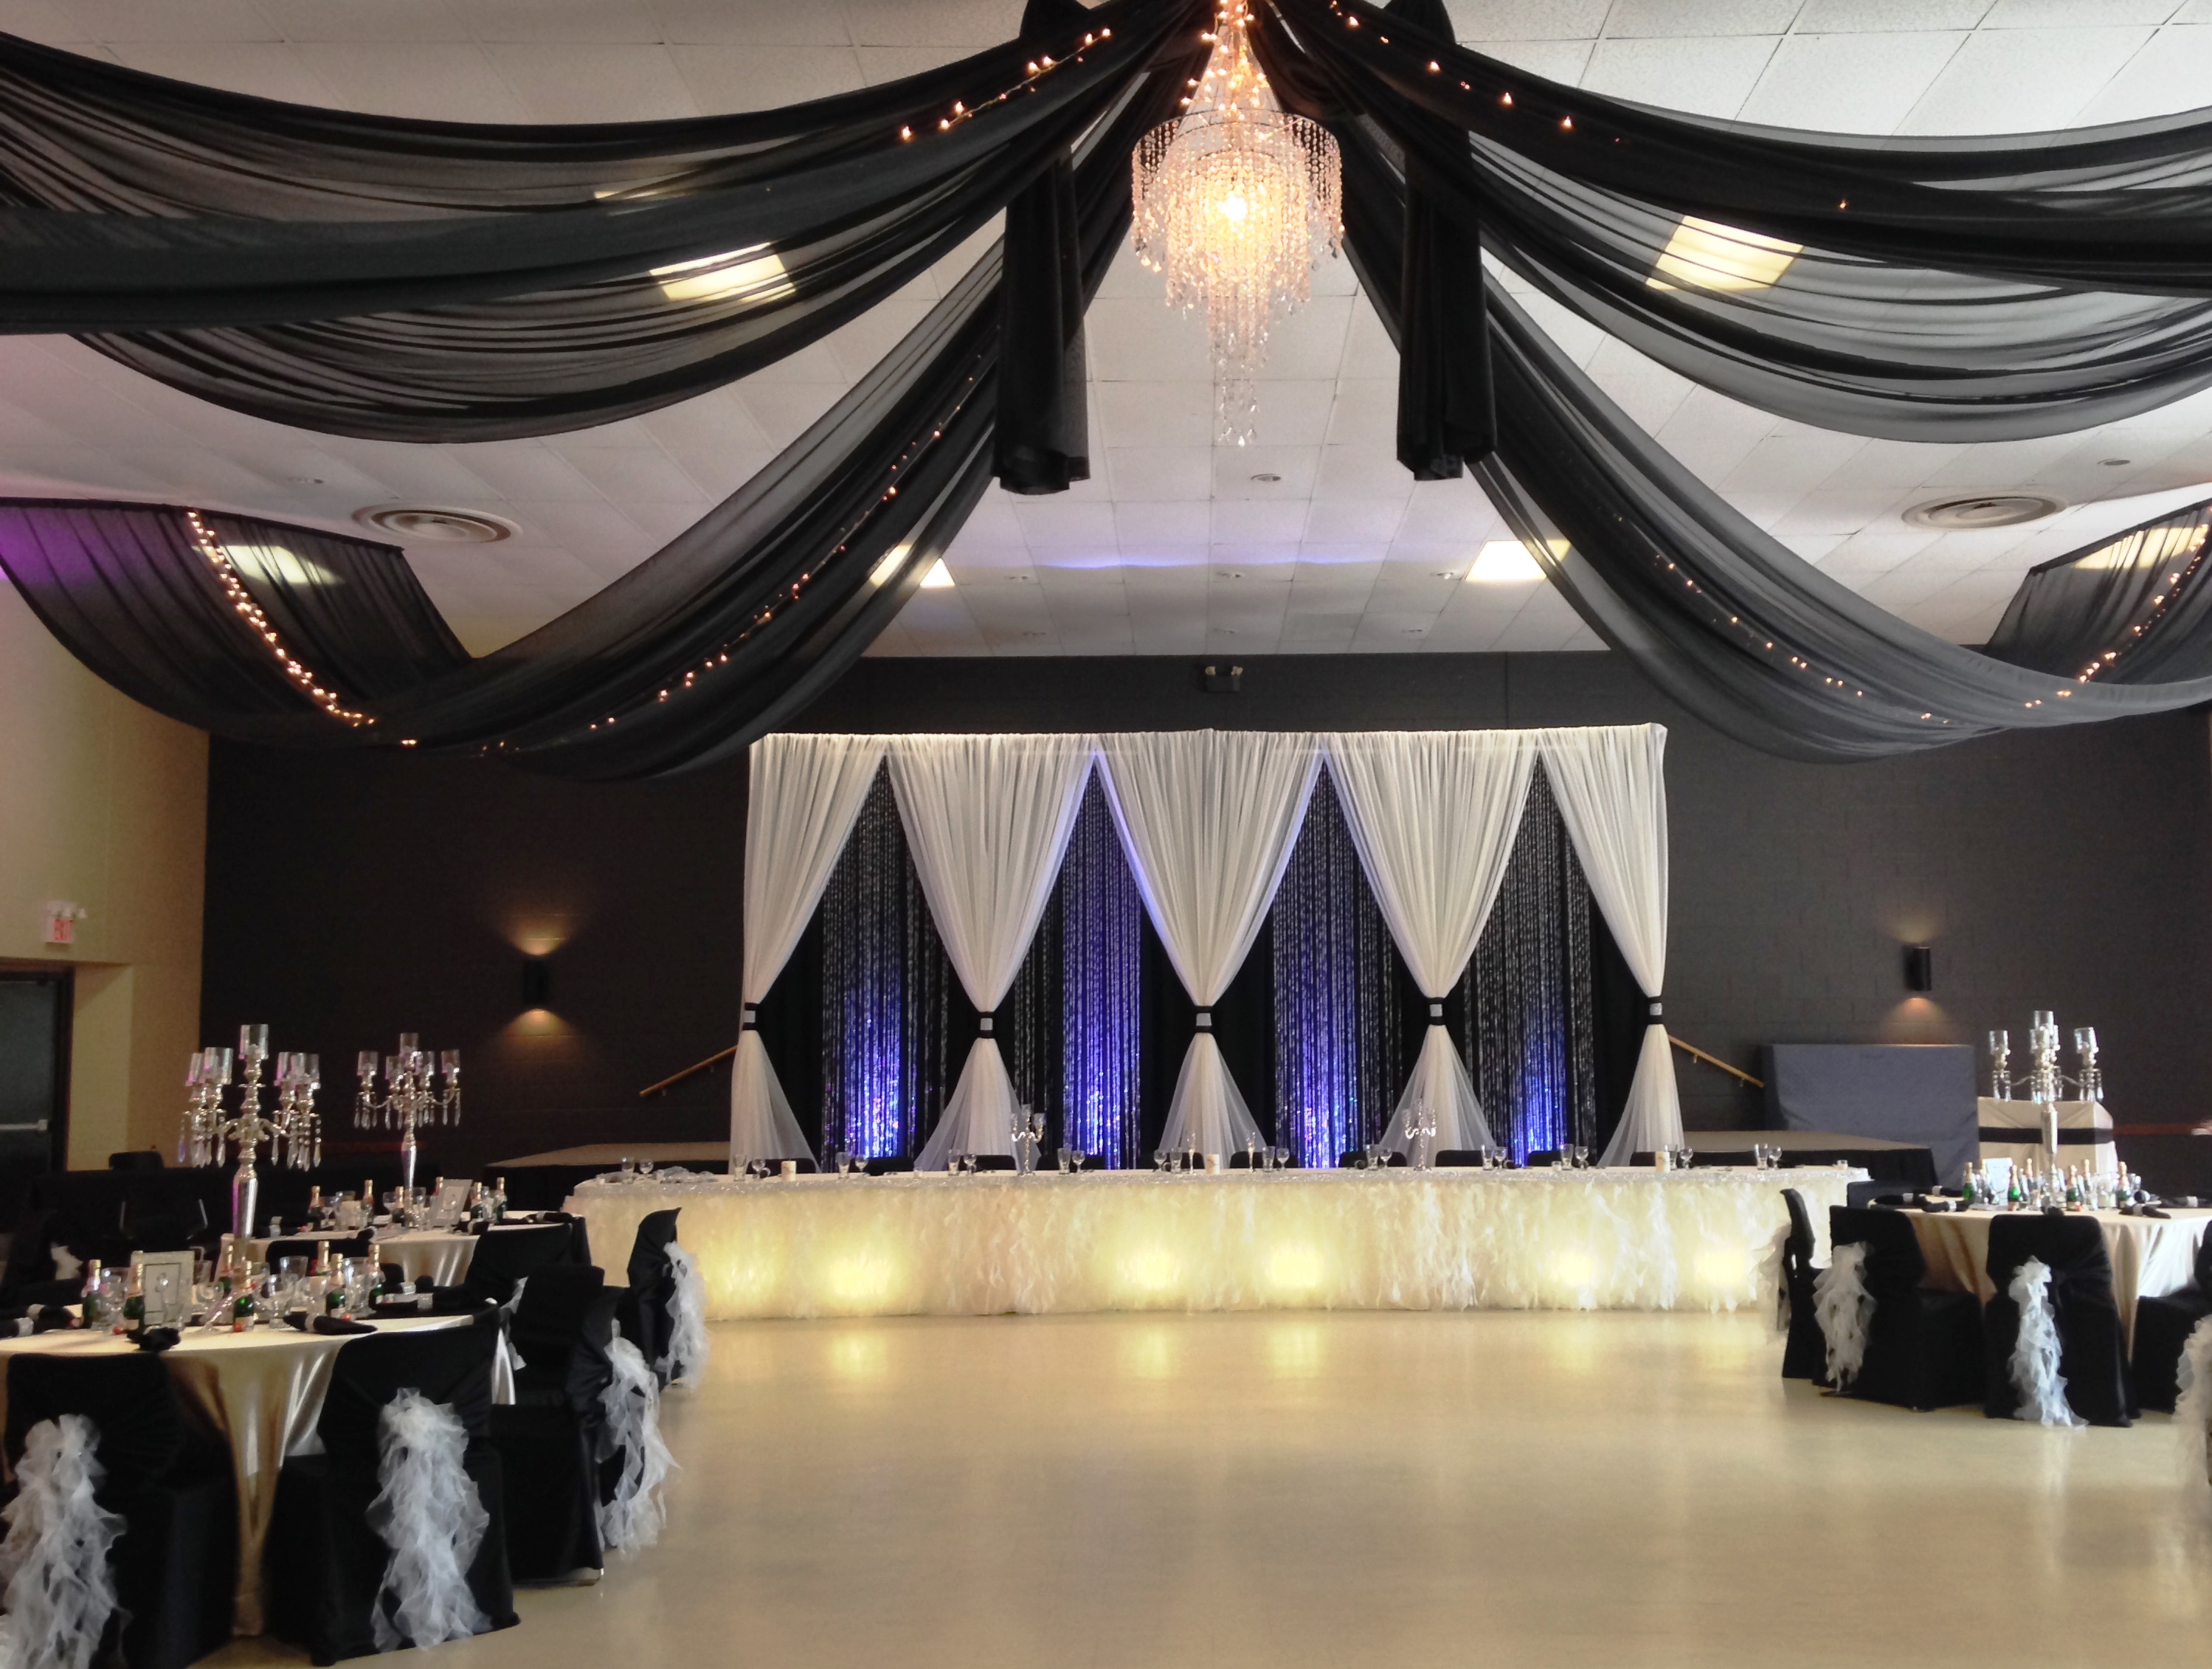 chair cover rentals durham region futon and ottoman covers annie lane events decor